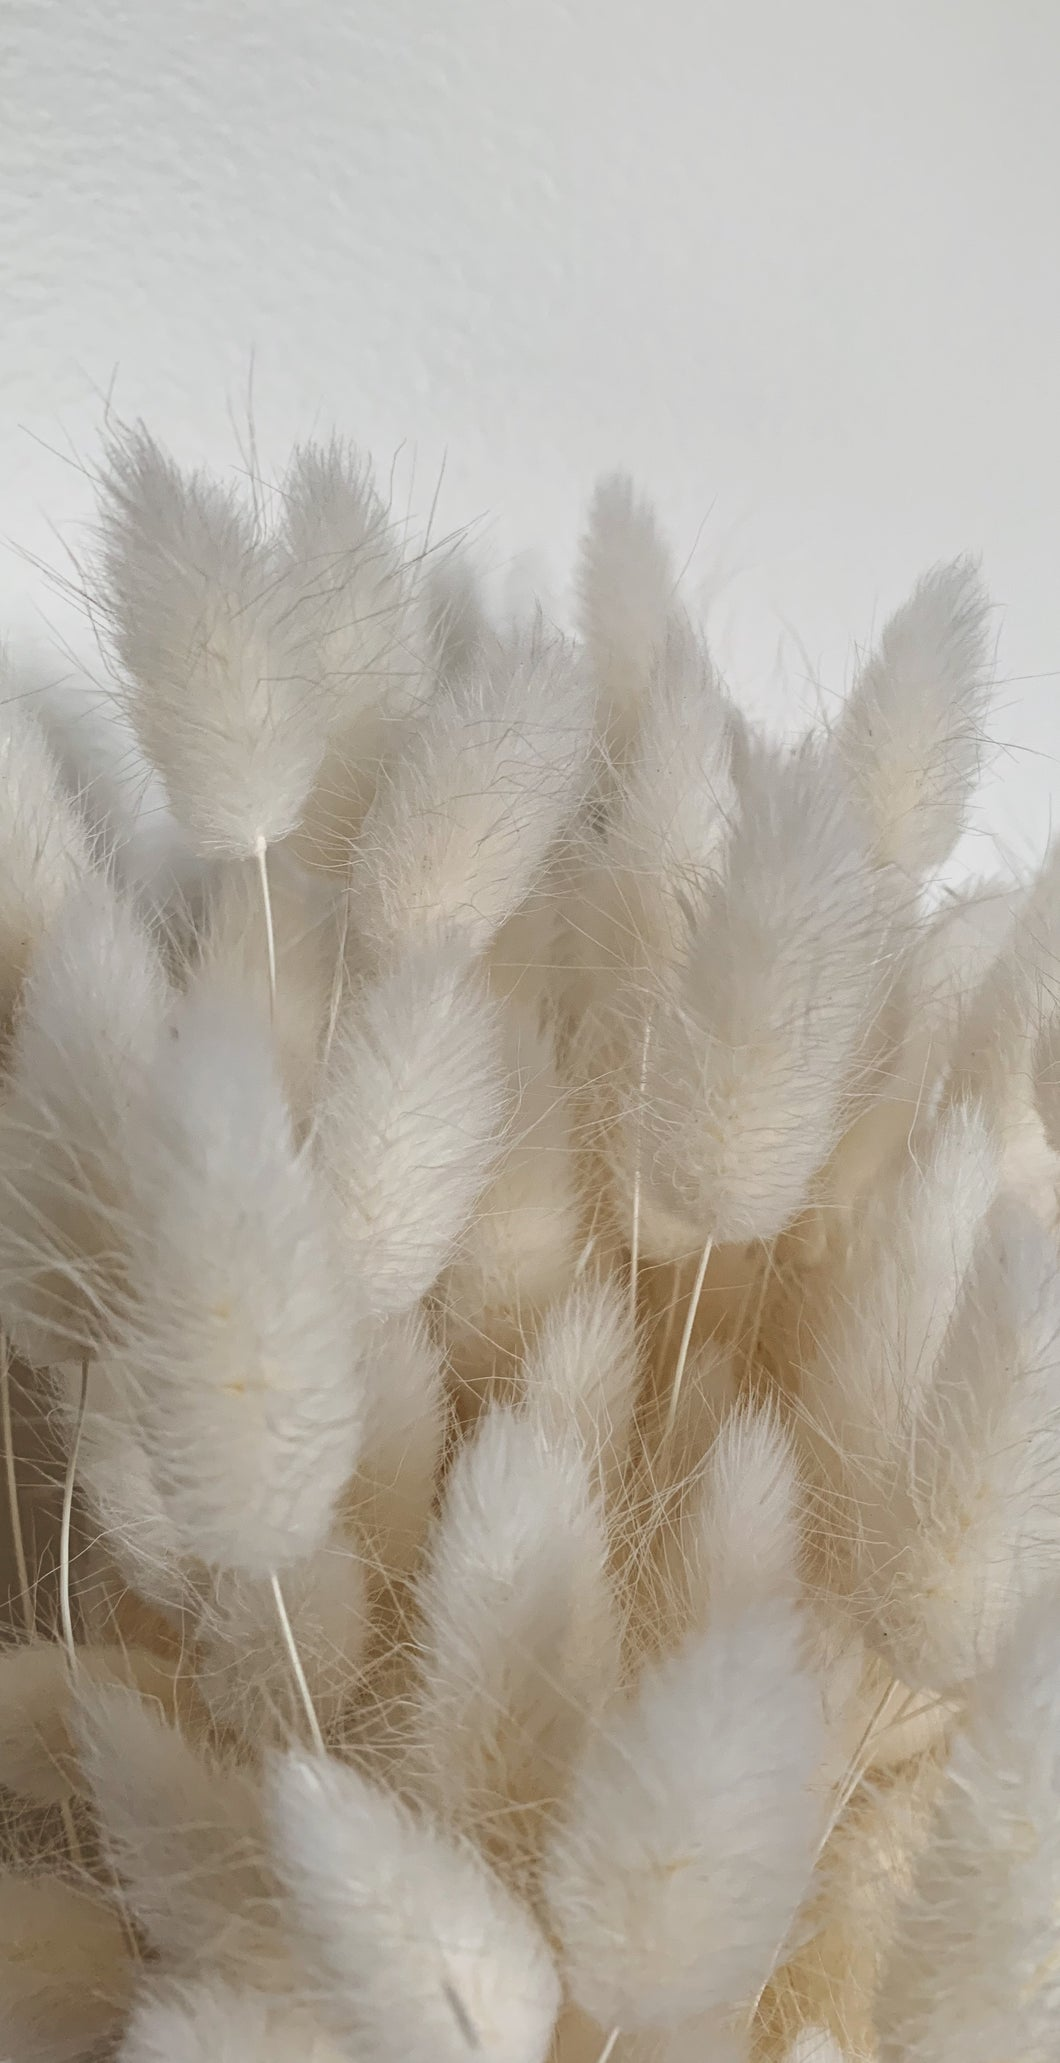 White Bunny Tails Wallpaper II